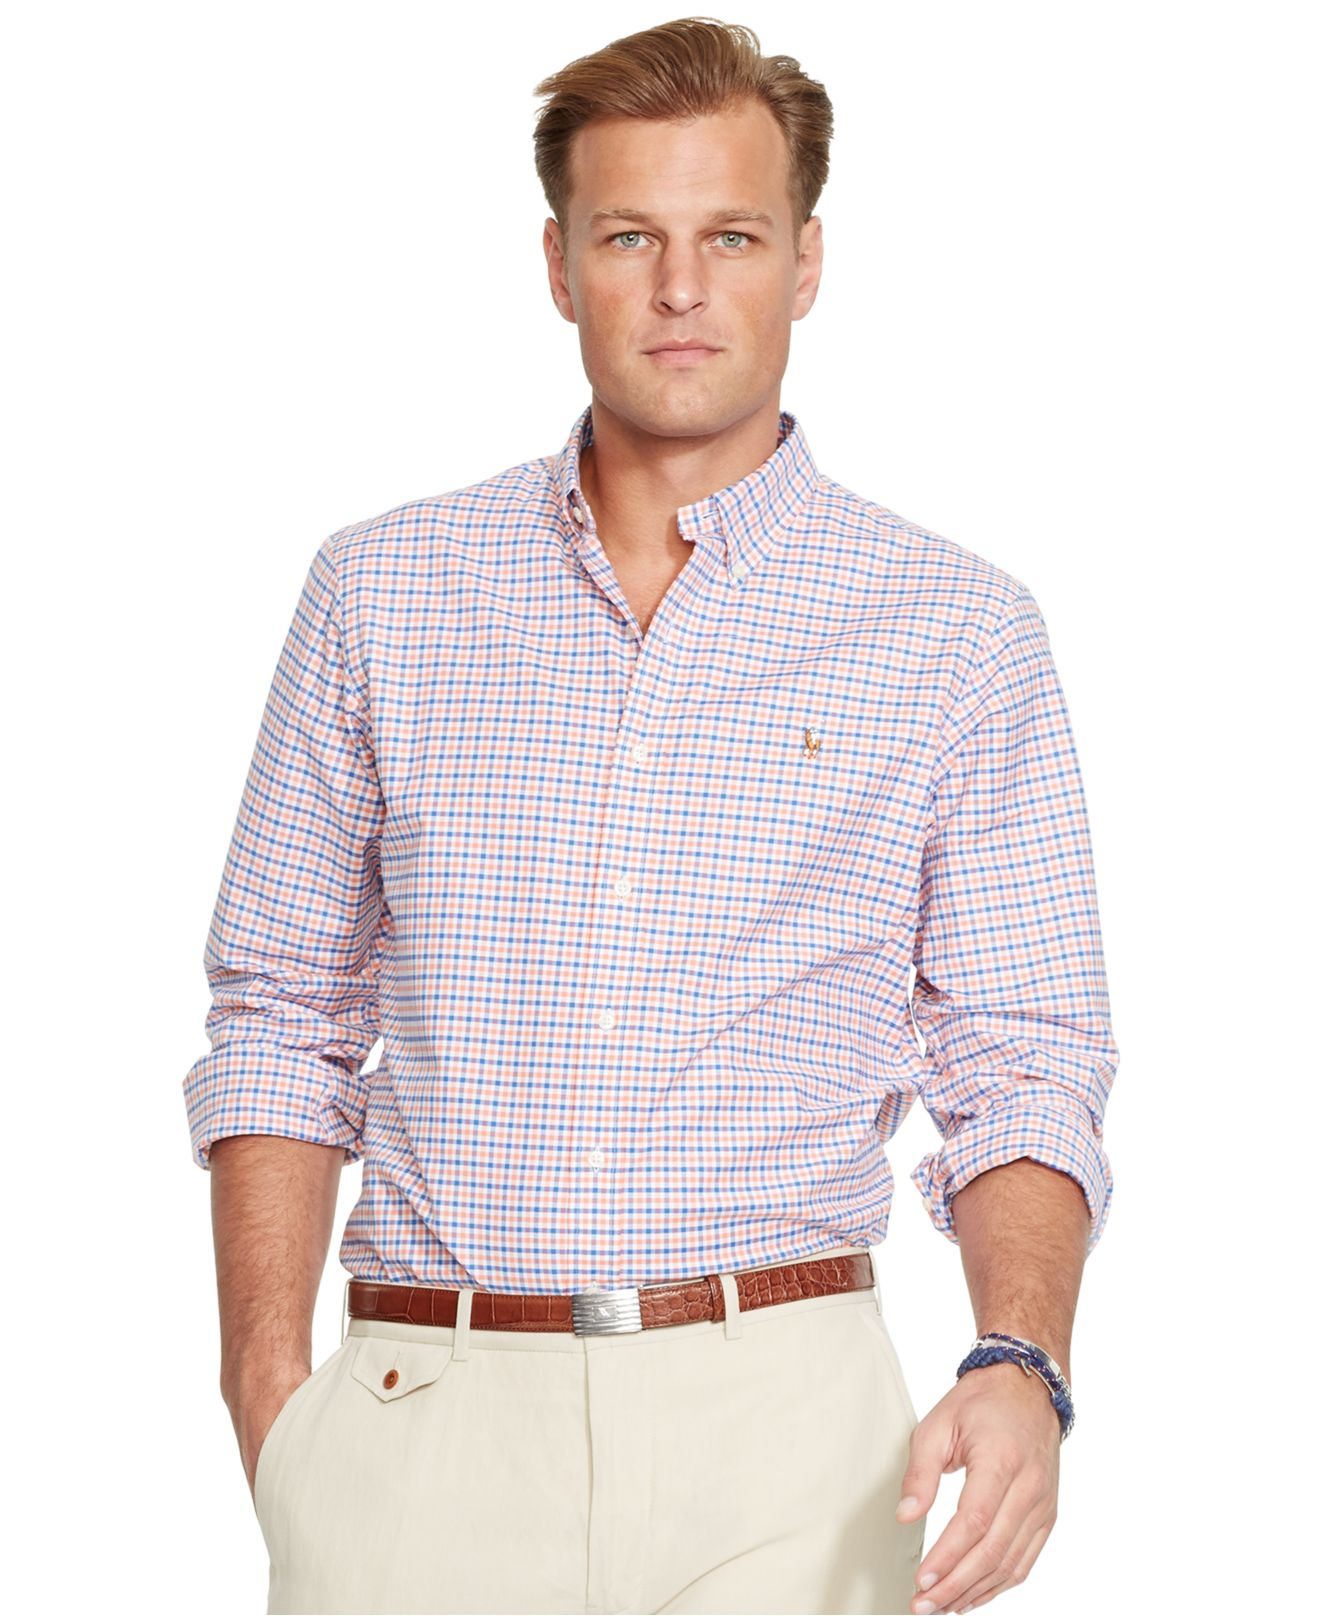 Polo ralph lauren big and tall classic fit oxford shirt in for Big and tall oxford shirts